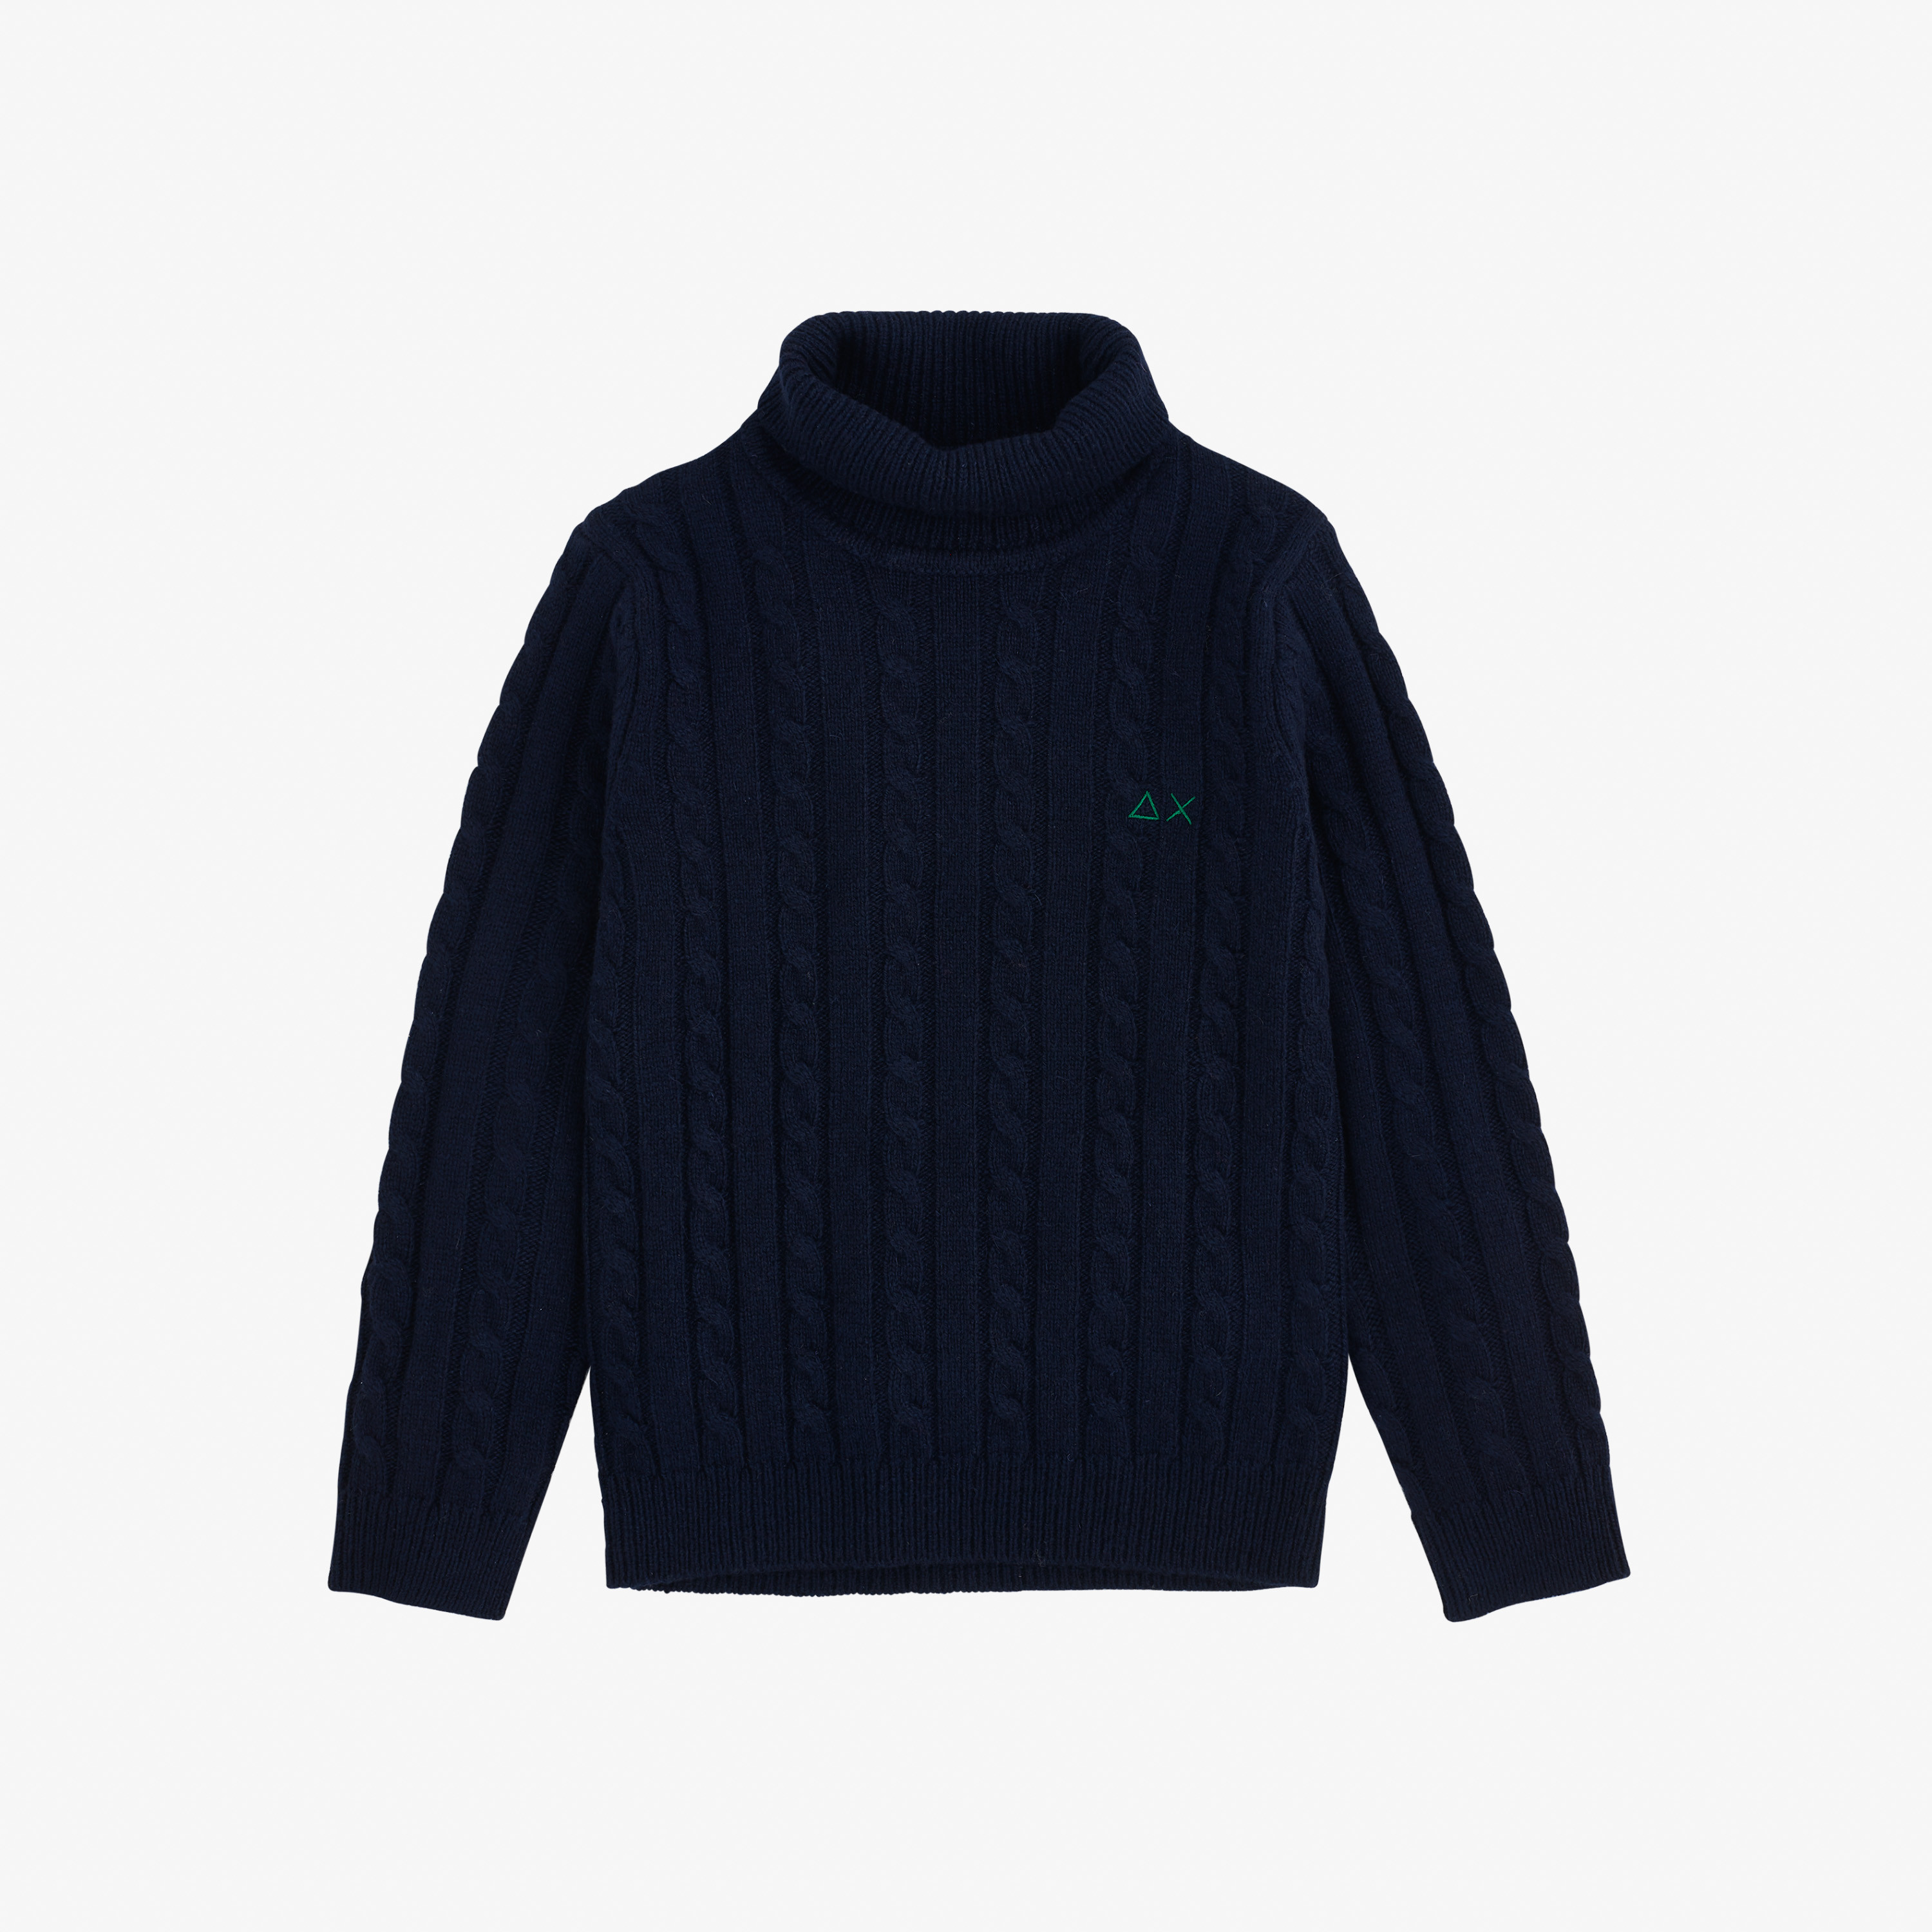 BOY'S TURTLE CABLE NAVY BLUE